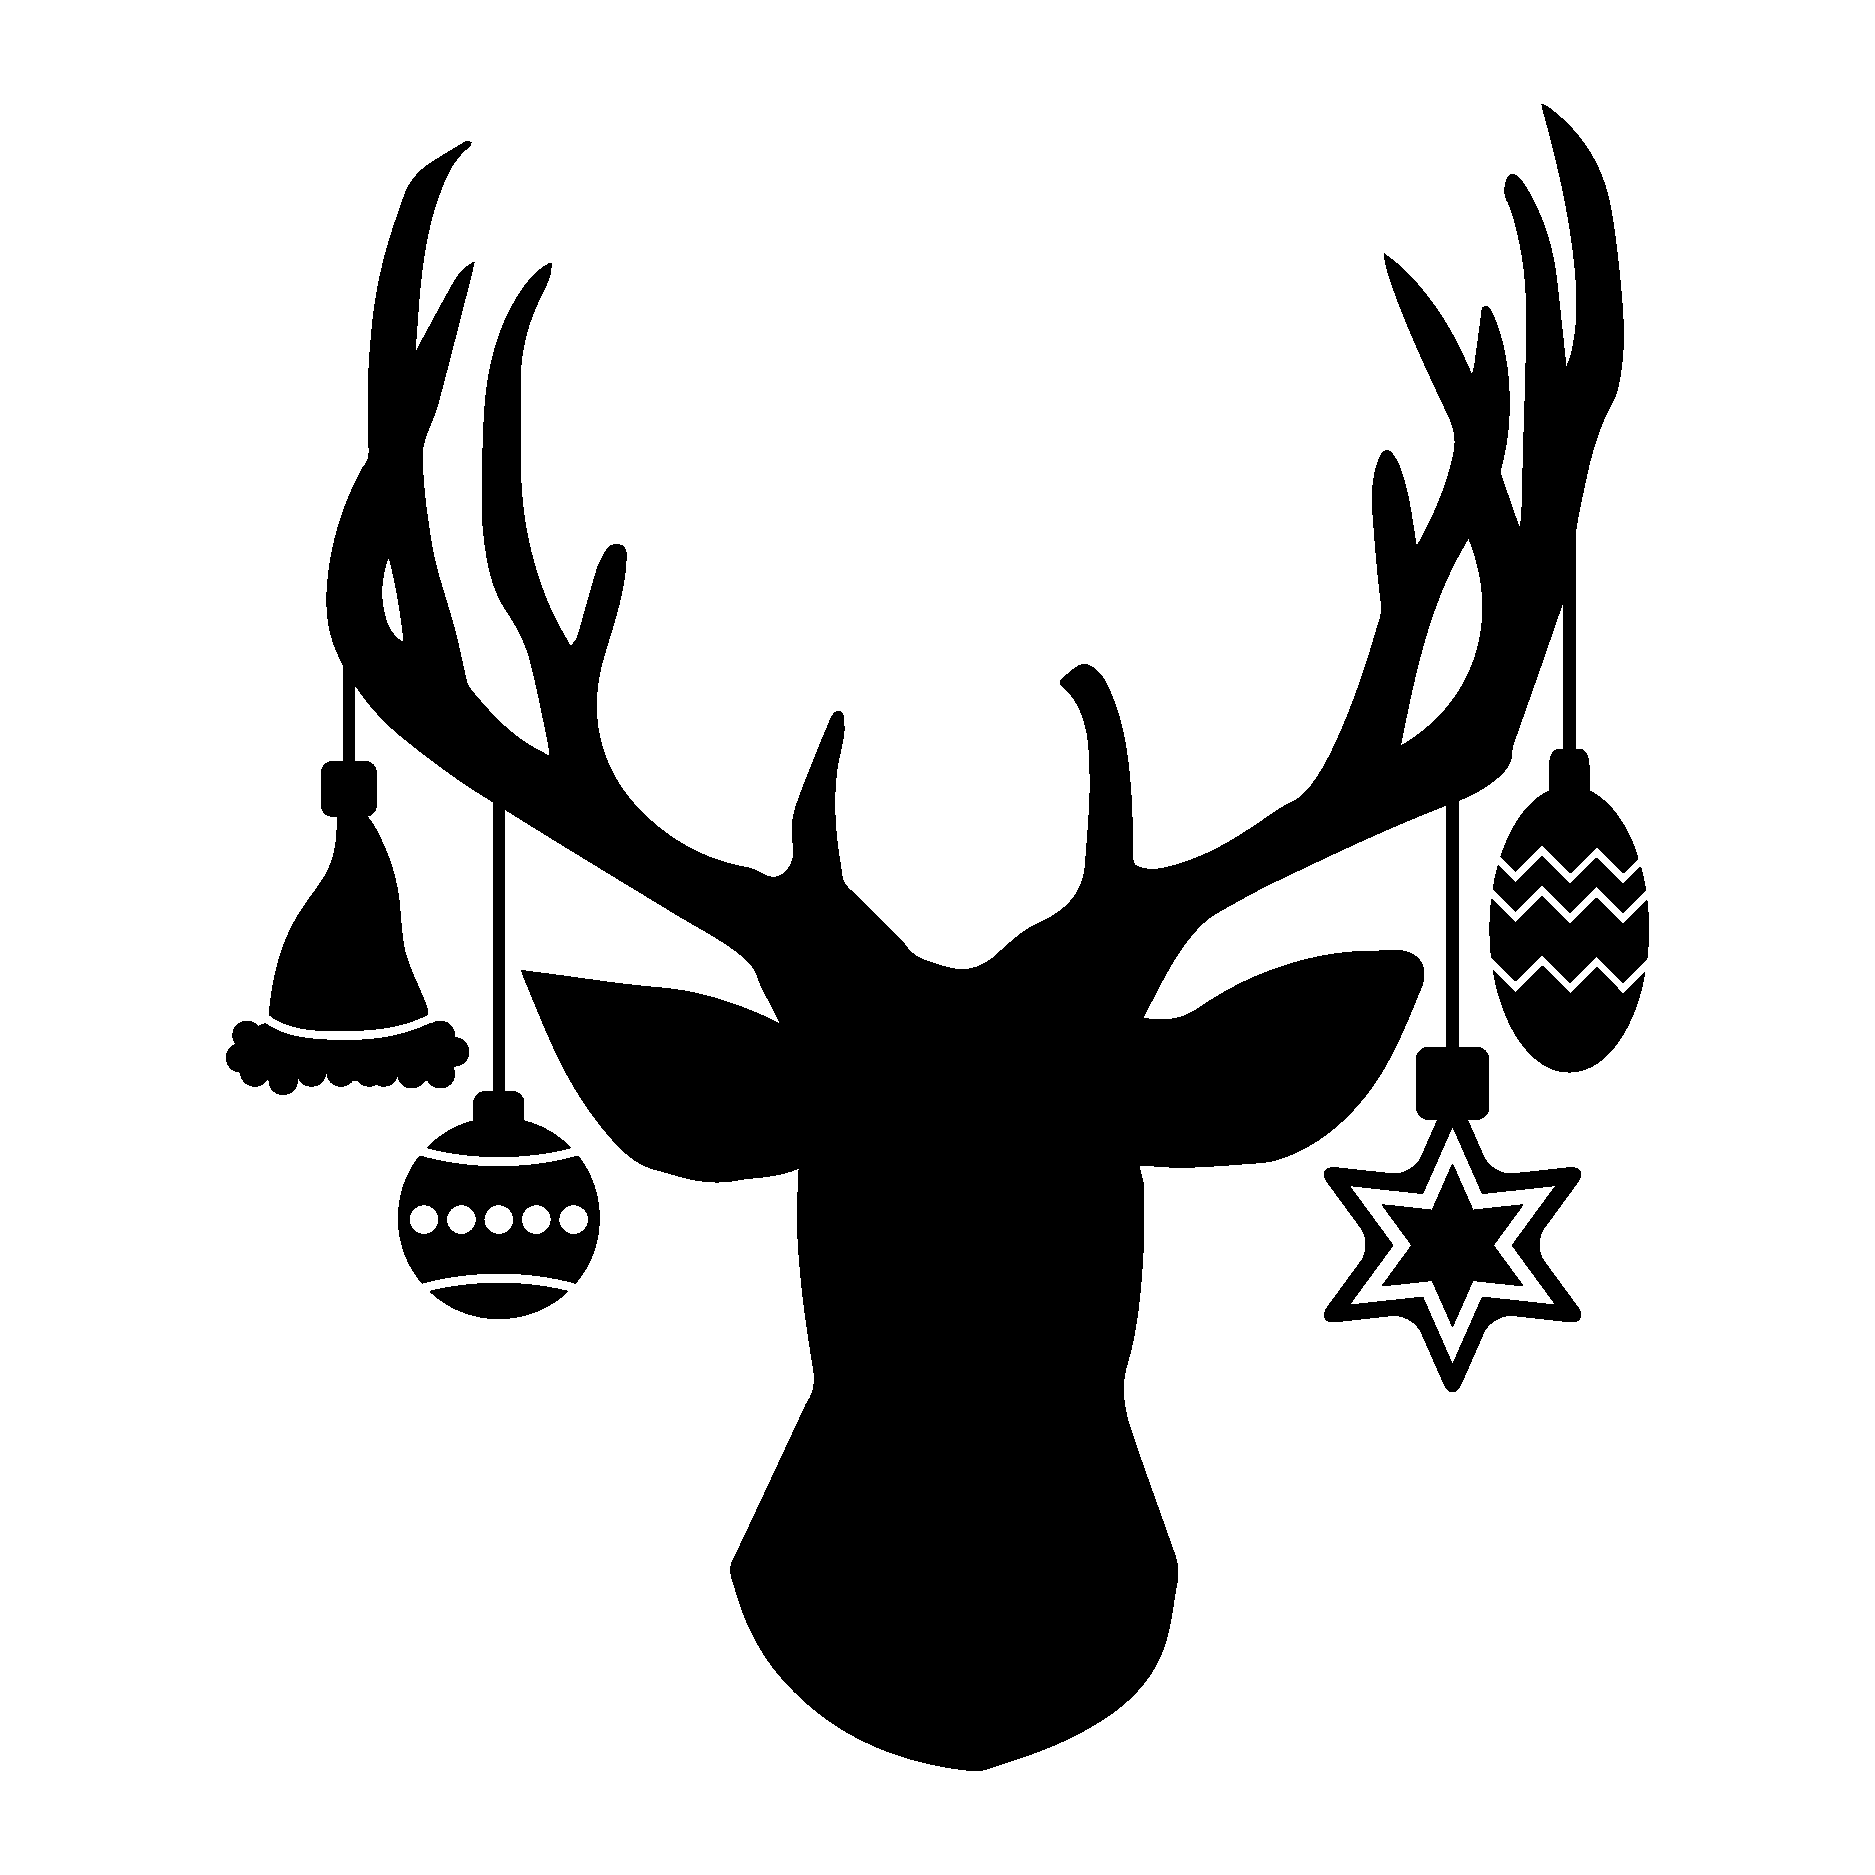 Deer head silhouette vector clipart images gallery for free.